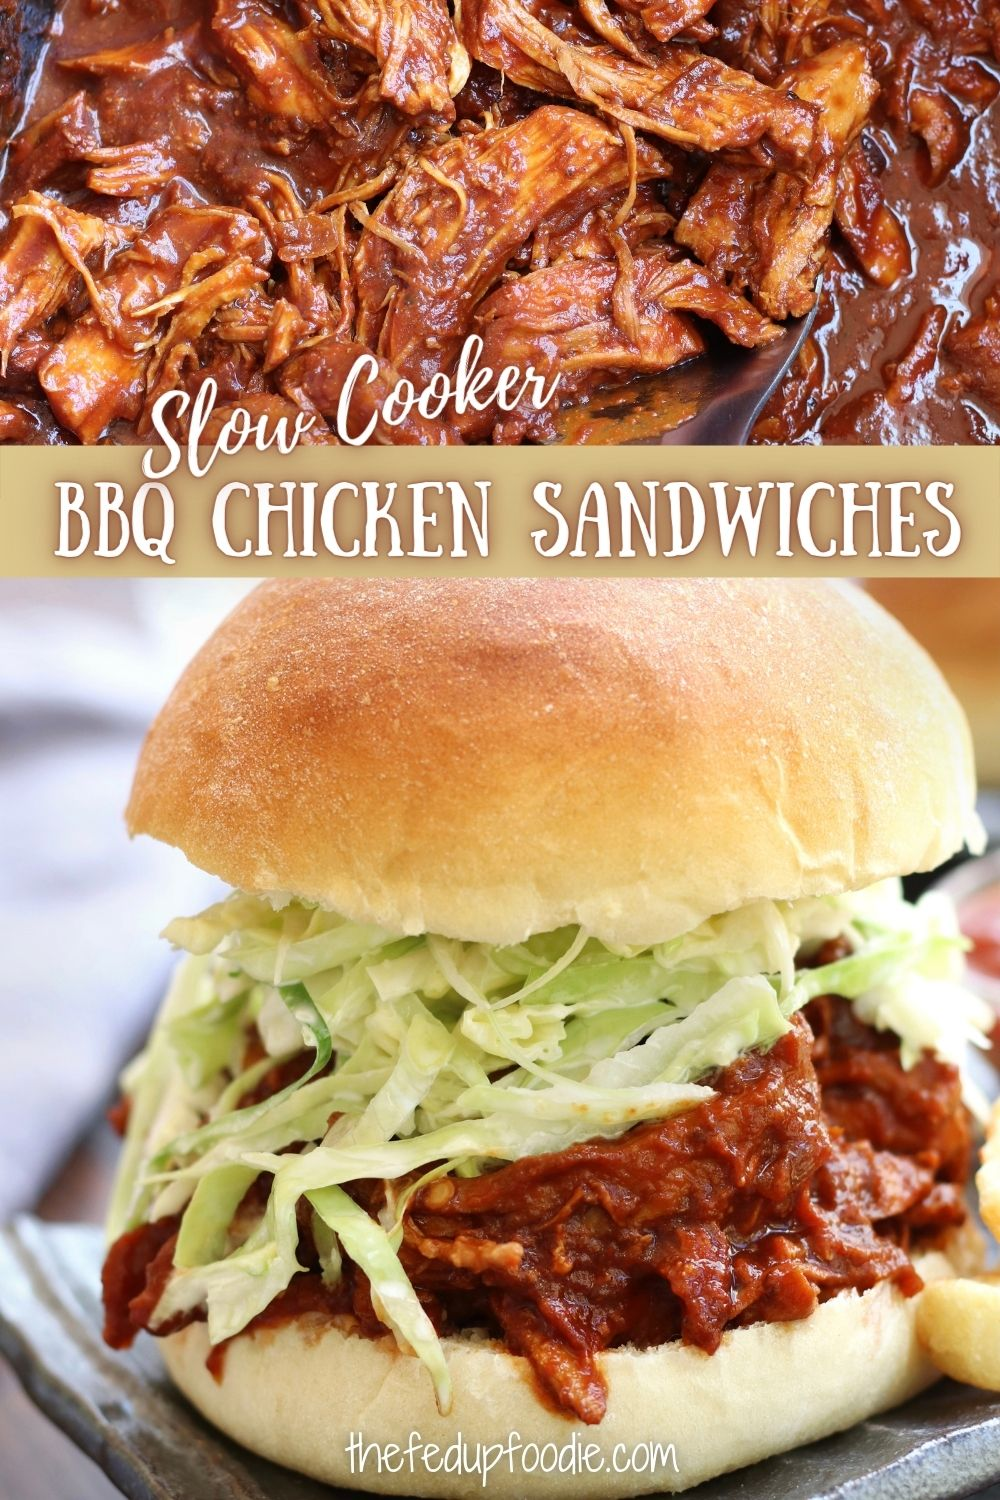 This BBQ Chicken Sandwich is an easy recipe made in the slow cooker with Homemade BBQ Sauce, a Simple Coleslaw and pulled chicken. An uncomplicated recipe that will make you feel like a chef on game day. #BBQChickenSandwich #BBQChickenSandwichCrockpot #BBQChickenSandwichRecipes #BBQChickenSandwichPulled #BBQChickenSandwichWithColeslaw #BBQChickenSandwichWithSlaw #ShreddedBBQChickenRecipes #SlowCookerBBQChicken